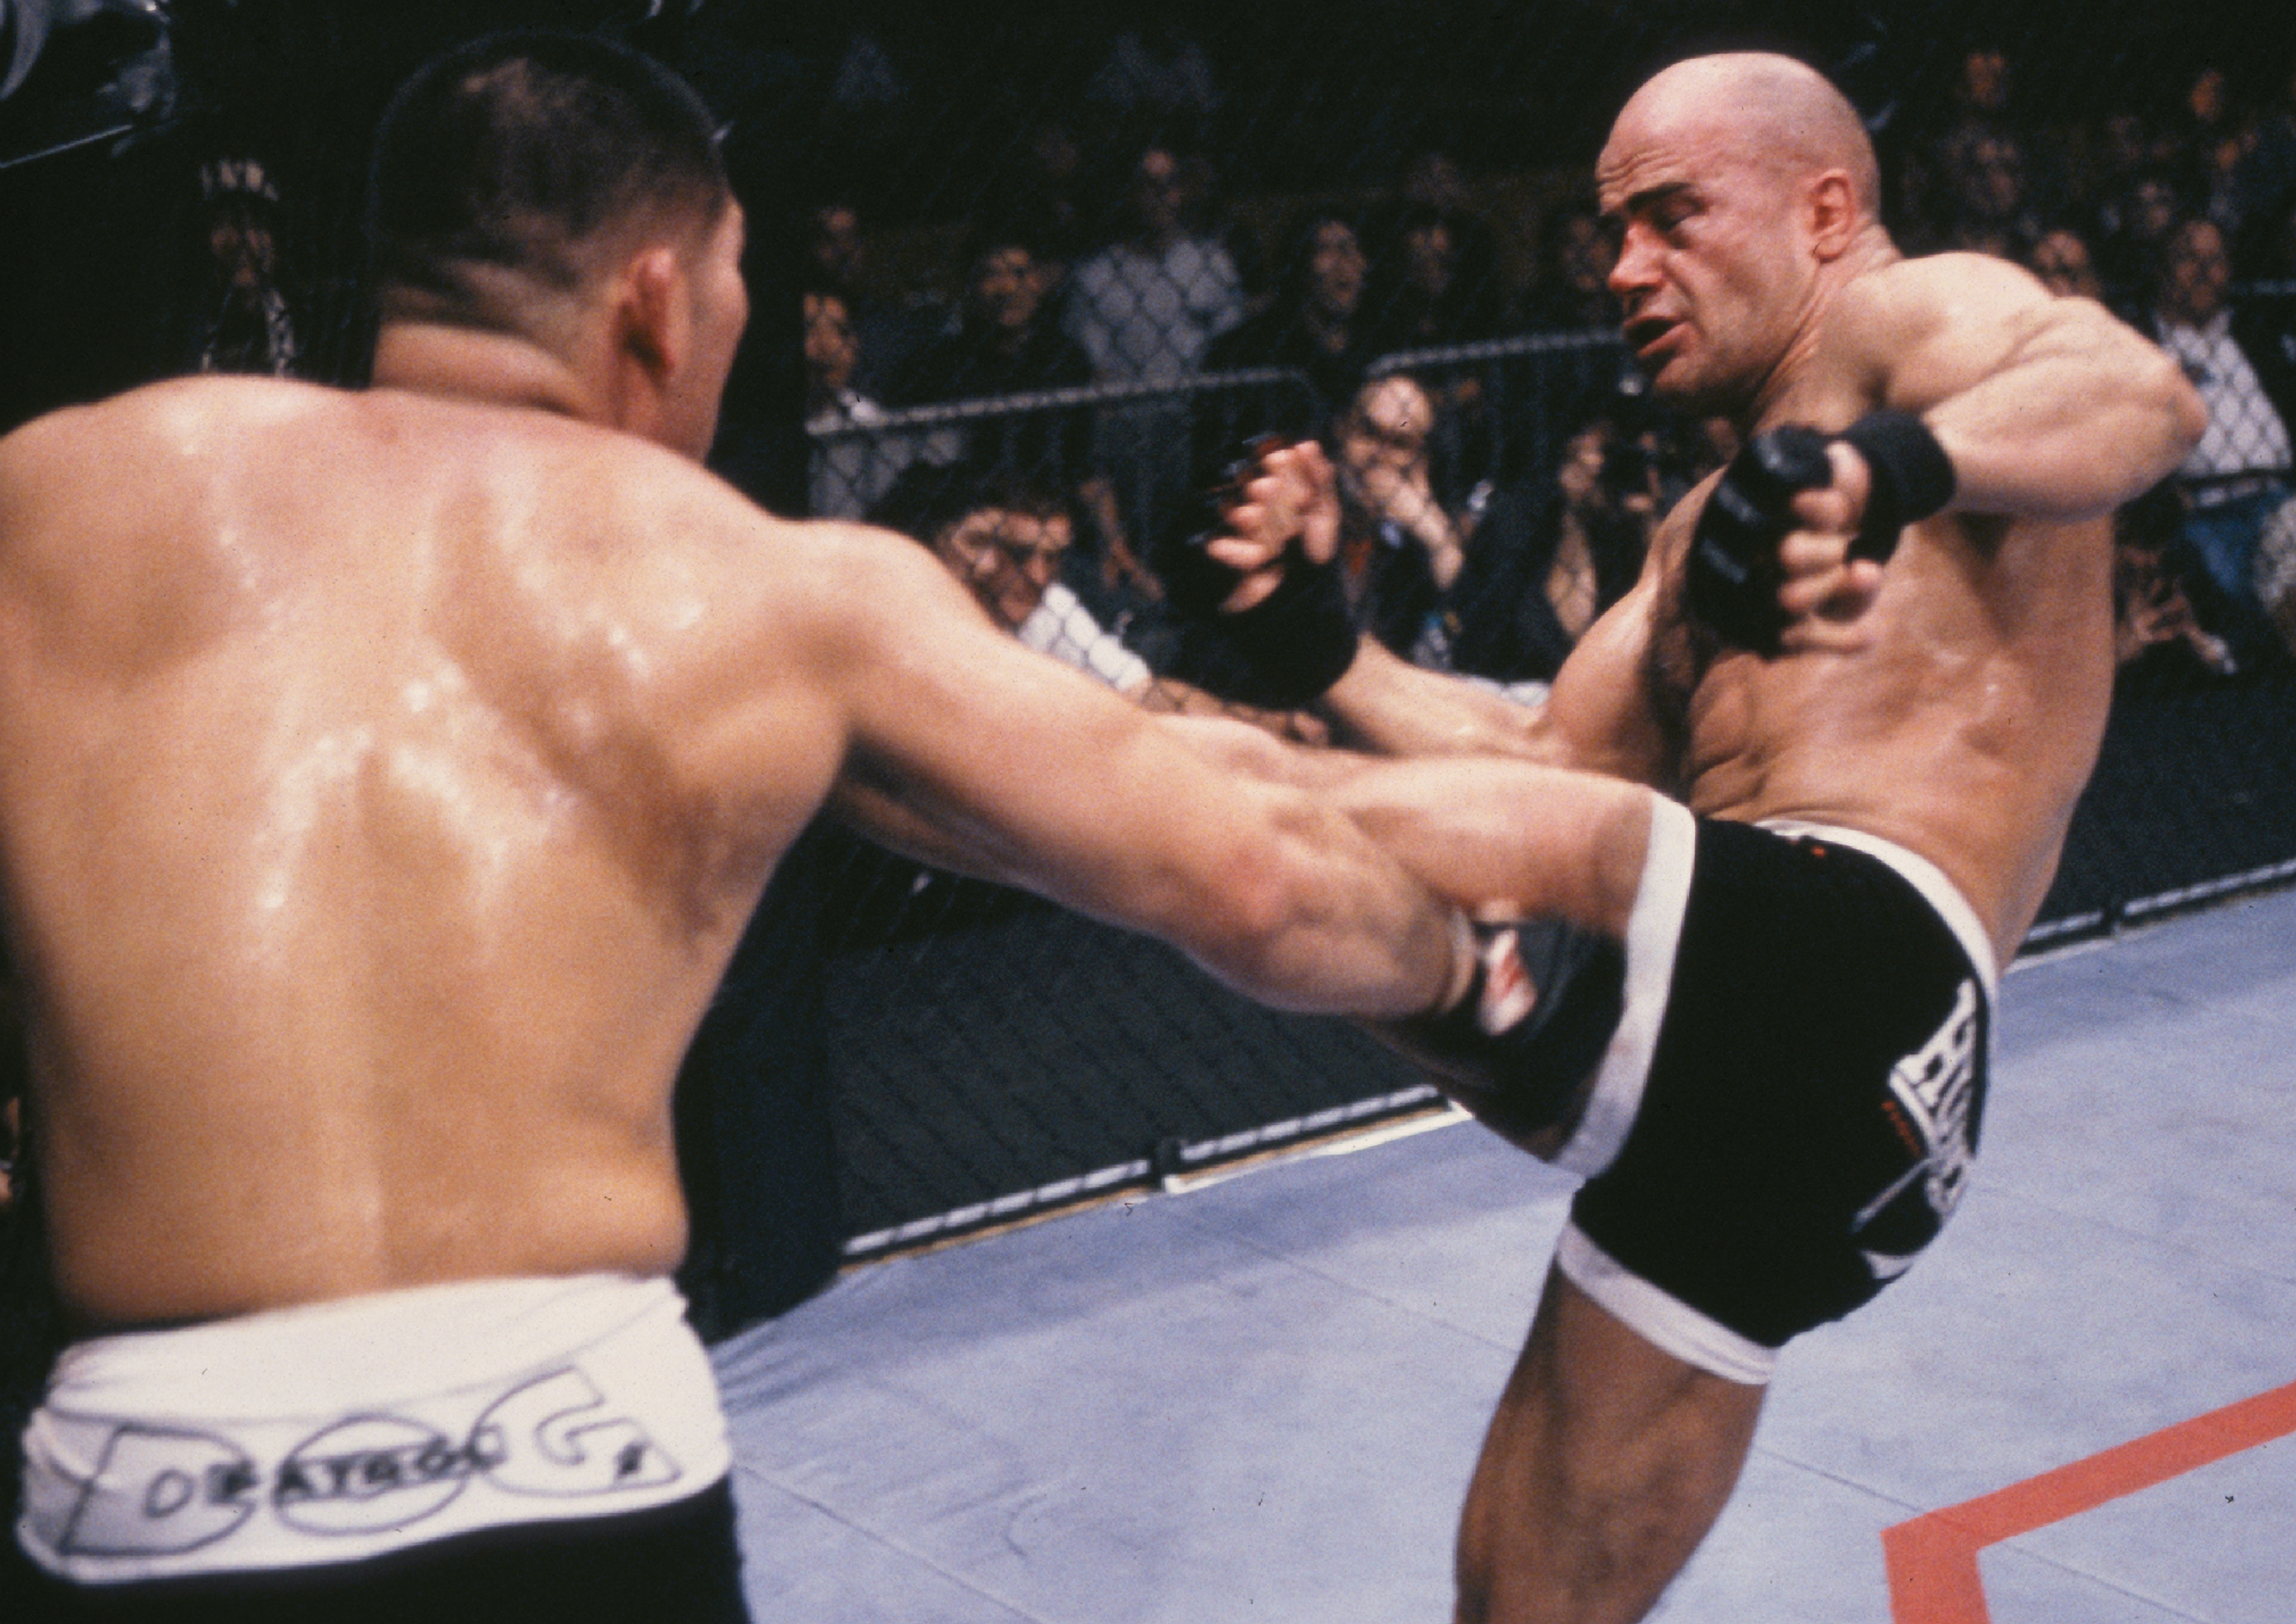 Bas Rutten (R) kicks Tsuyoshi Kosaka during their bout at UFC 18 on January 8, 1999 in Kenner, Louisiana. (Photo by Josh Hedges/Zuffa LLC)